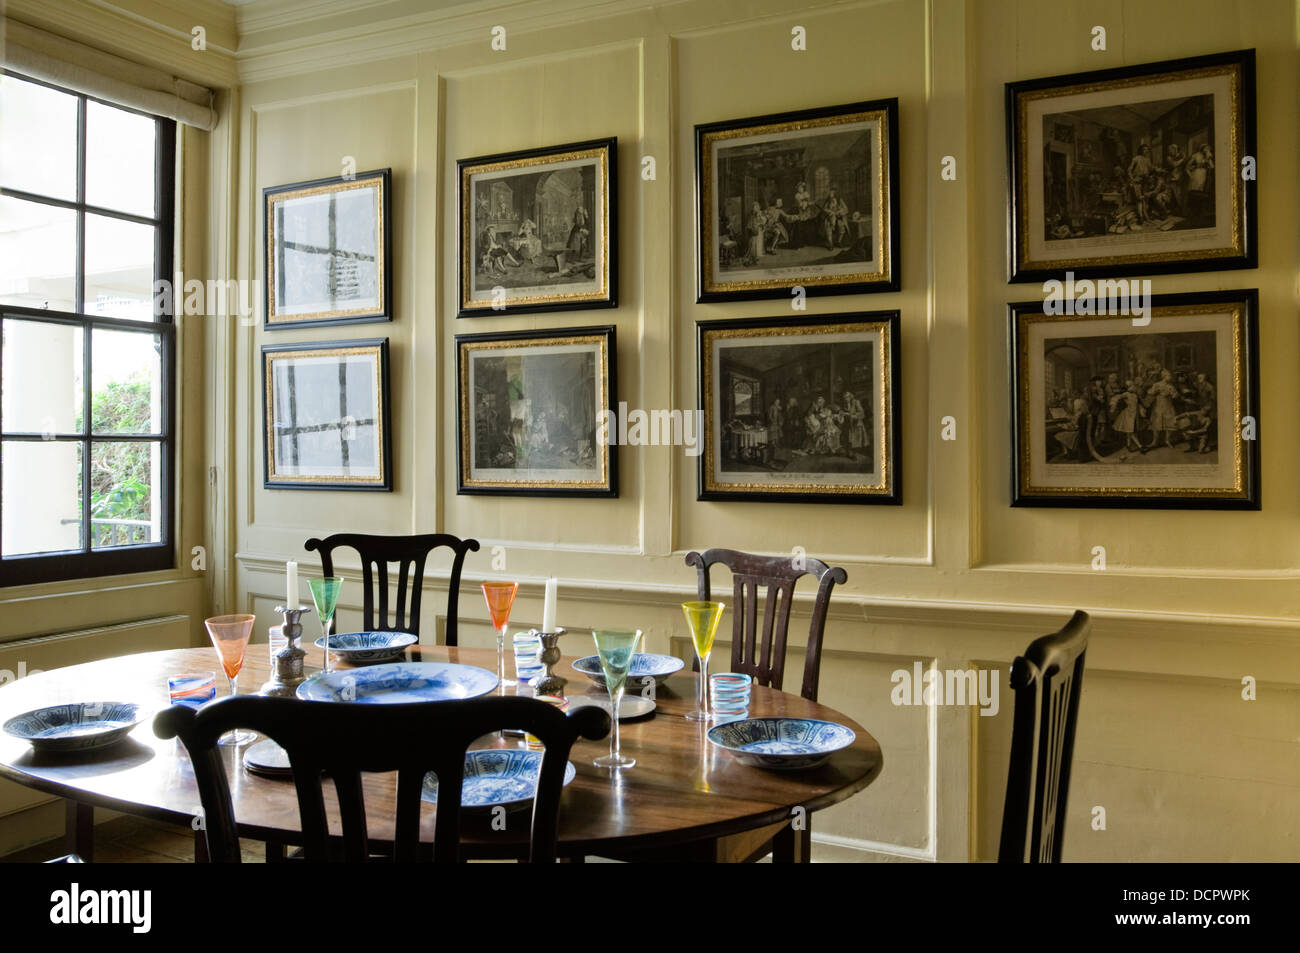 Venetian glassware on wooden table in dining room with collection of Hogarth's engravings on the wall Stock Photo